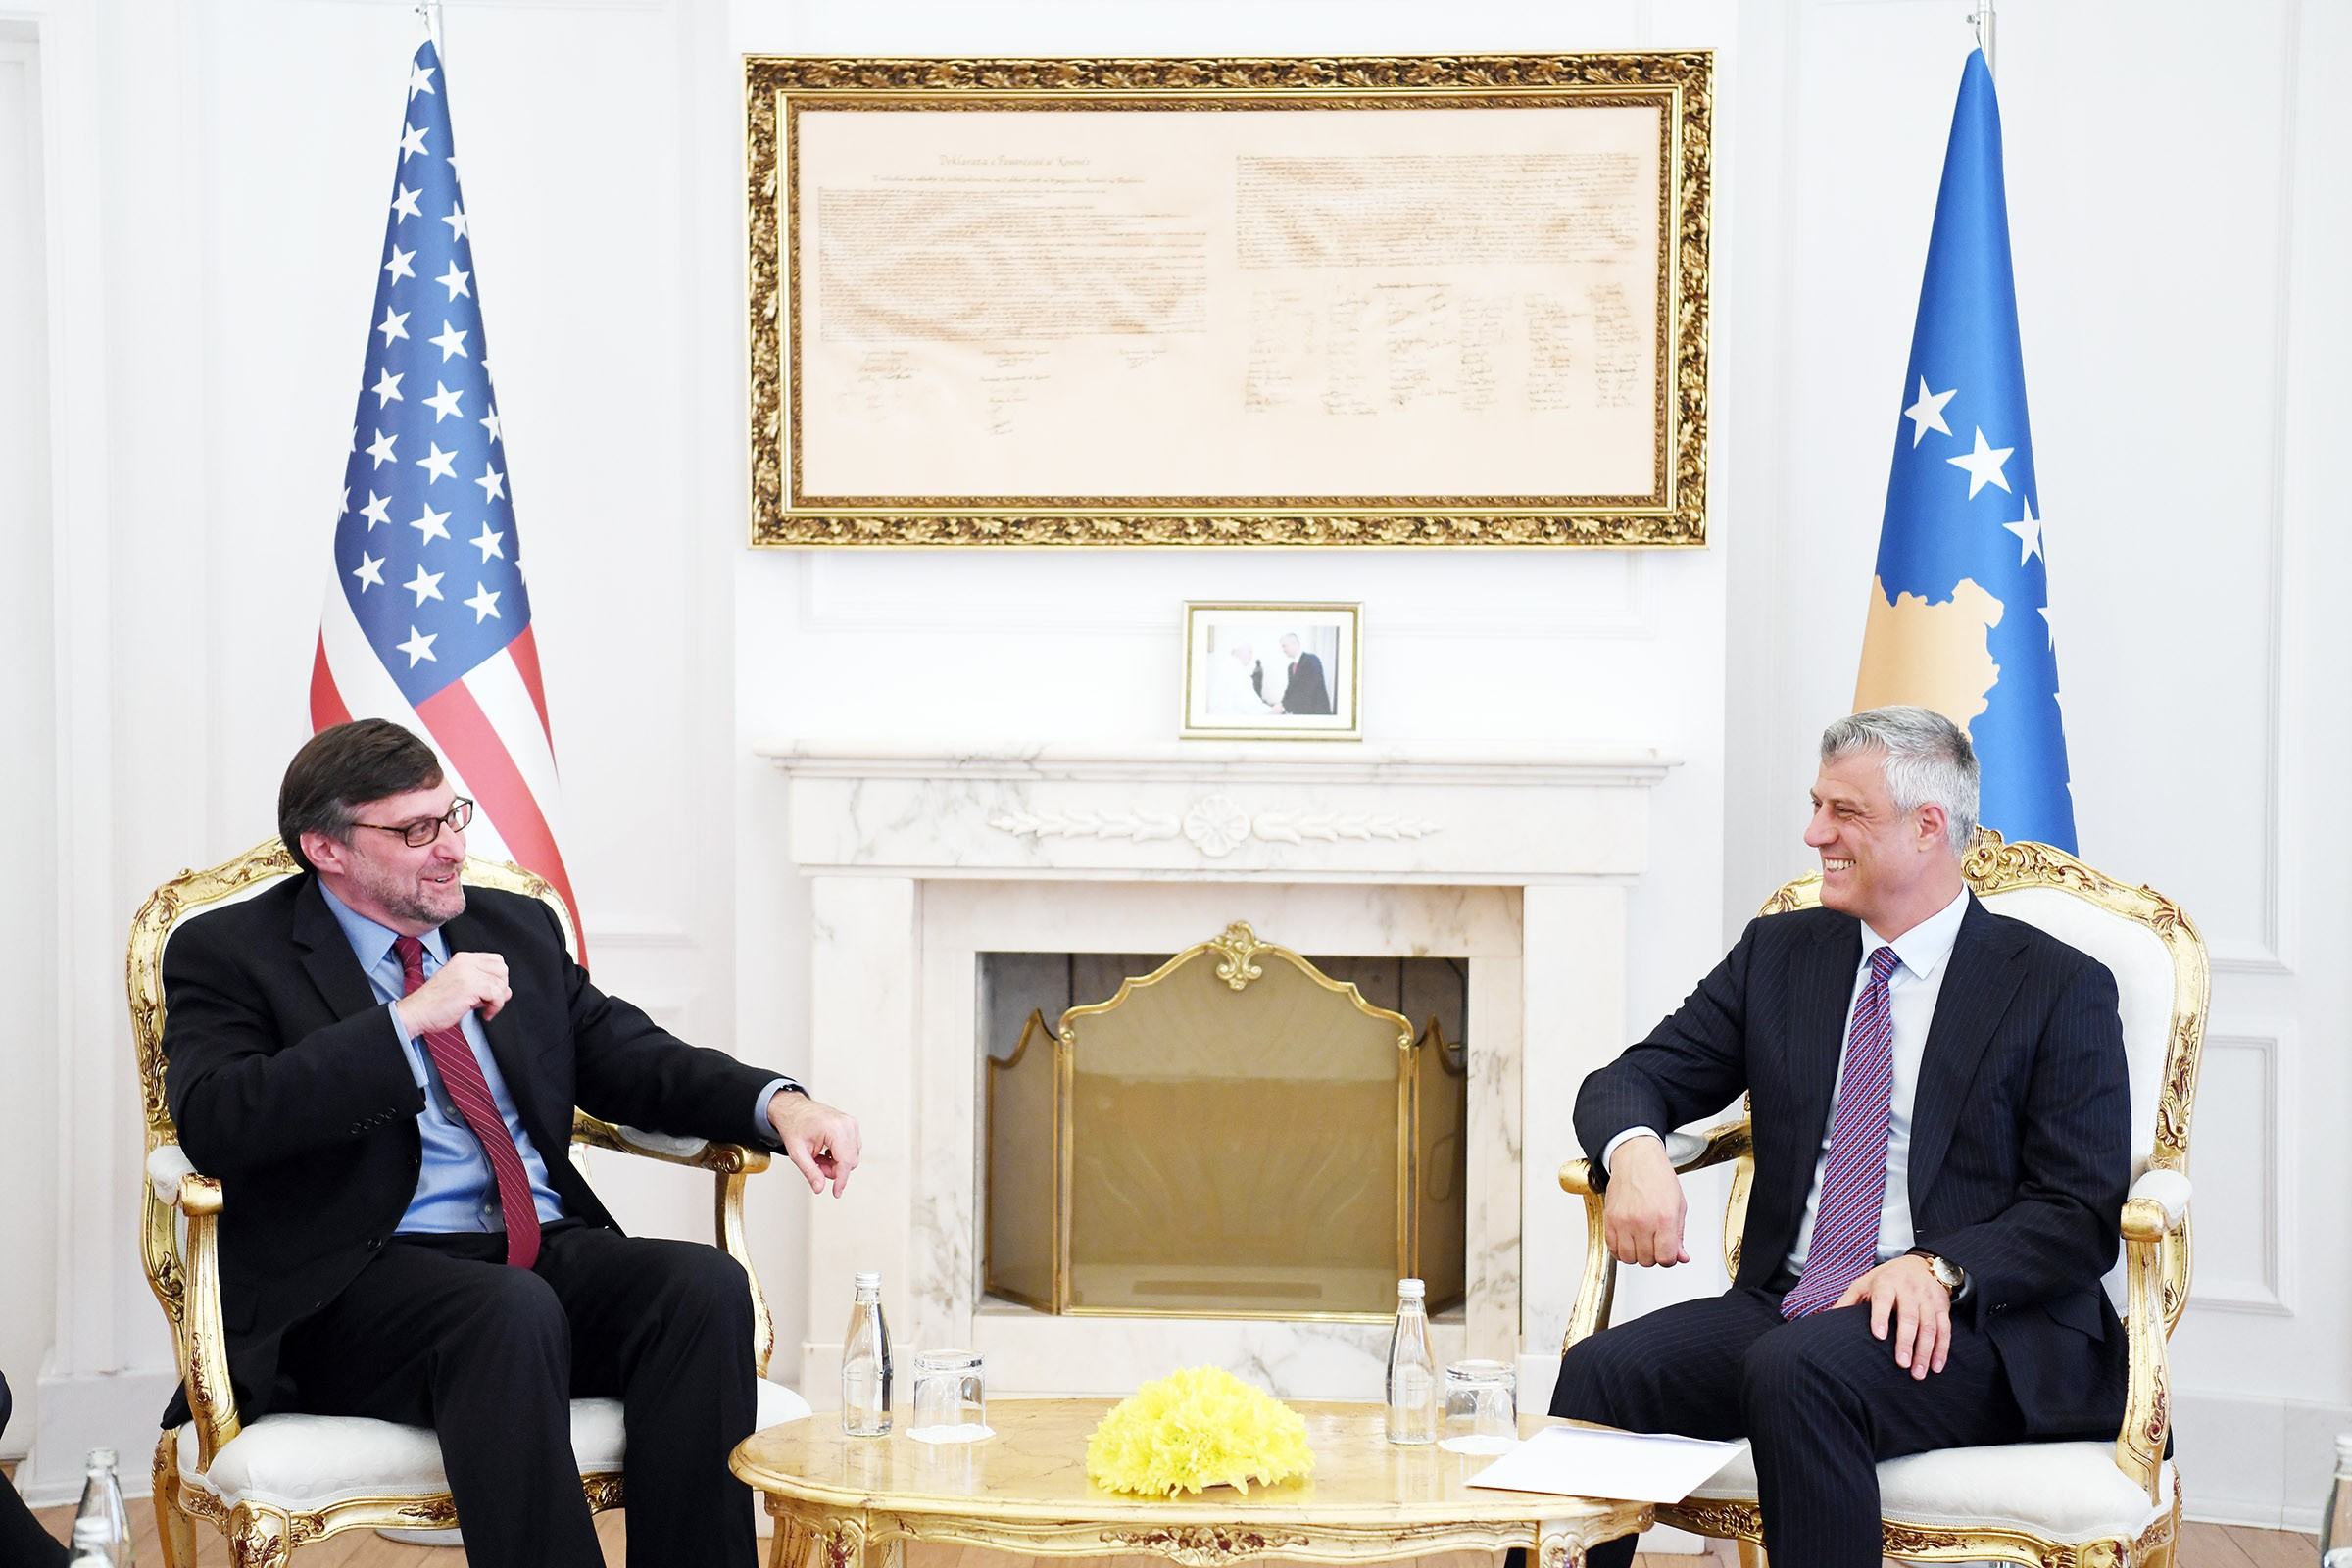 Palmer-Thaci: Time has come for a historic agreement between Pristina and Belgrade